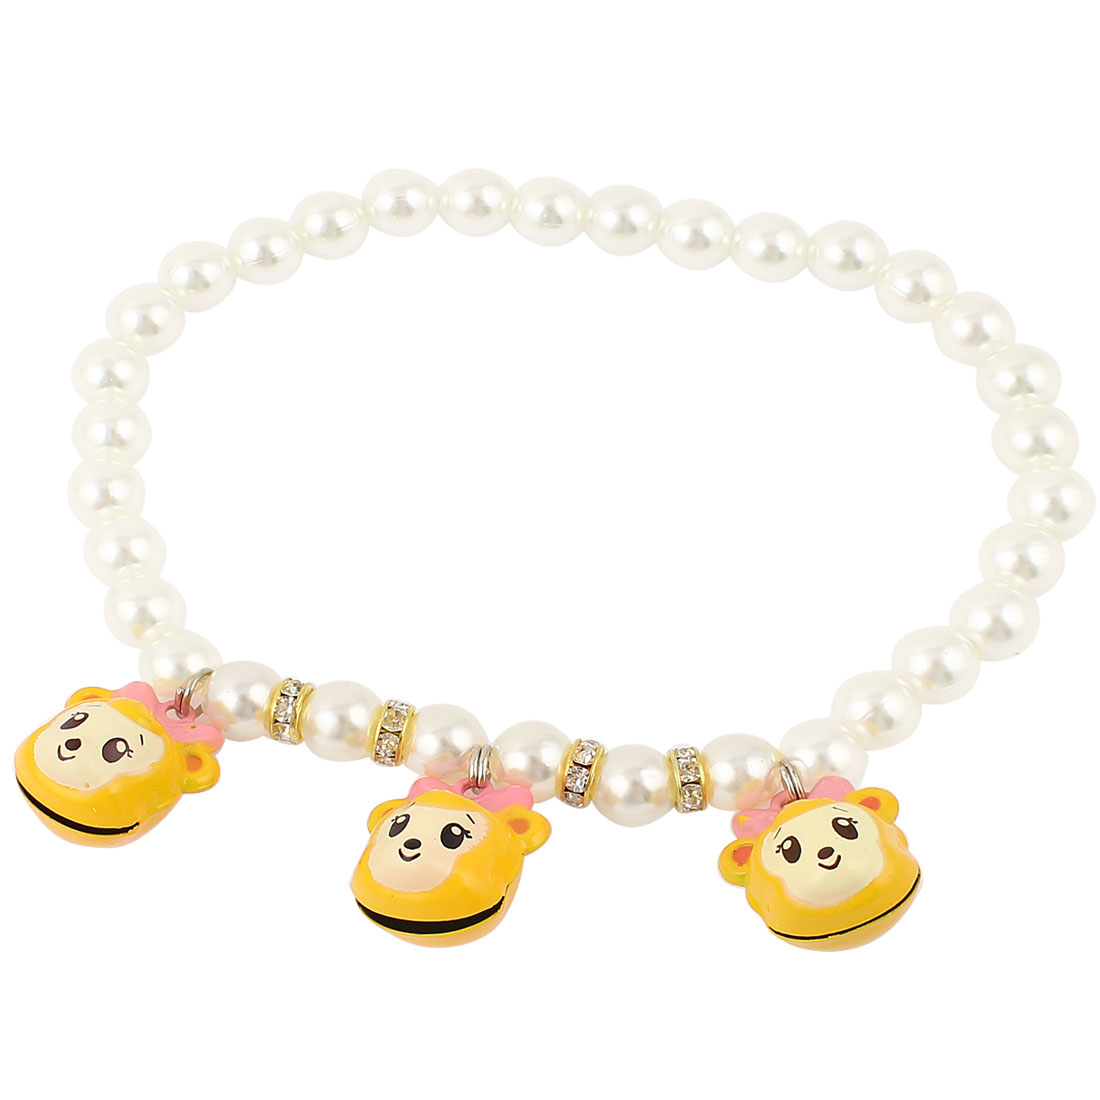 Metal Bell Pendant Rhinestone Accent Pet Dog Plastic Beads Imitation Pearls Collar Necklace White Yellow M